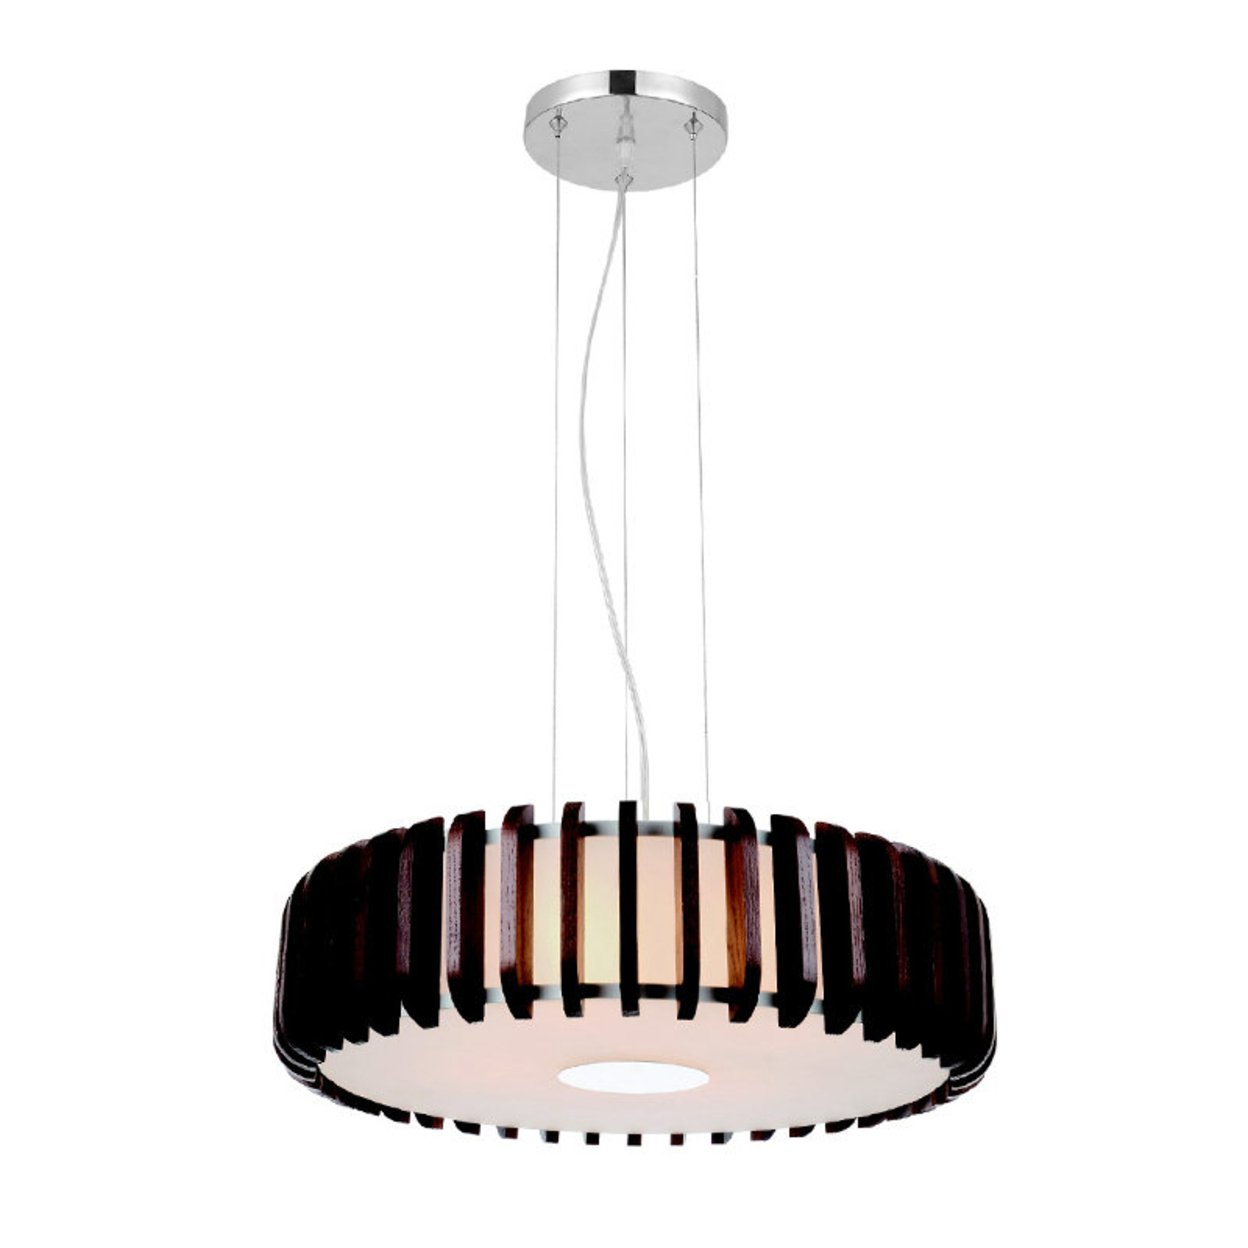 Modern Glass Shade Pendant Light with Nut-Brown Wooden Drum Frame